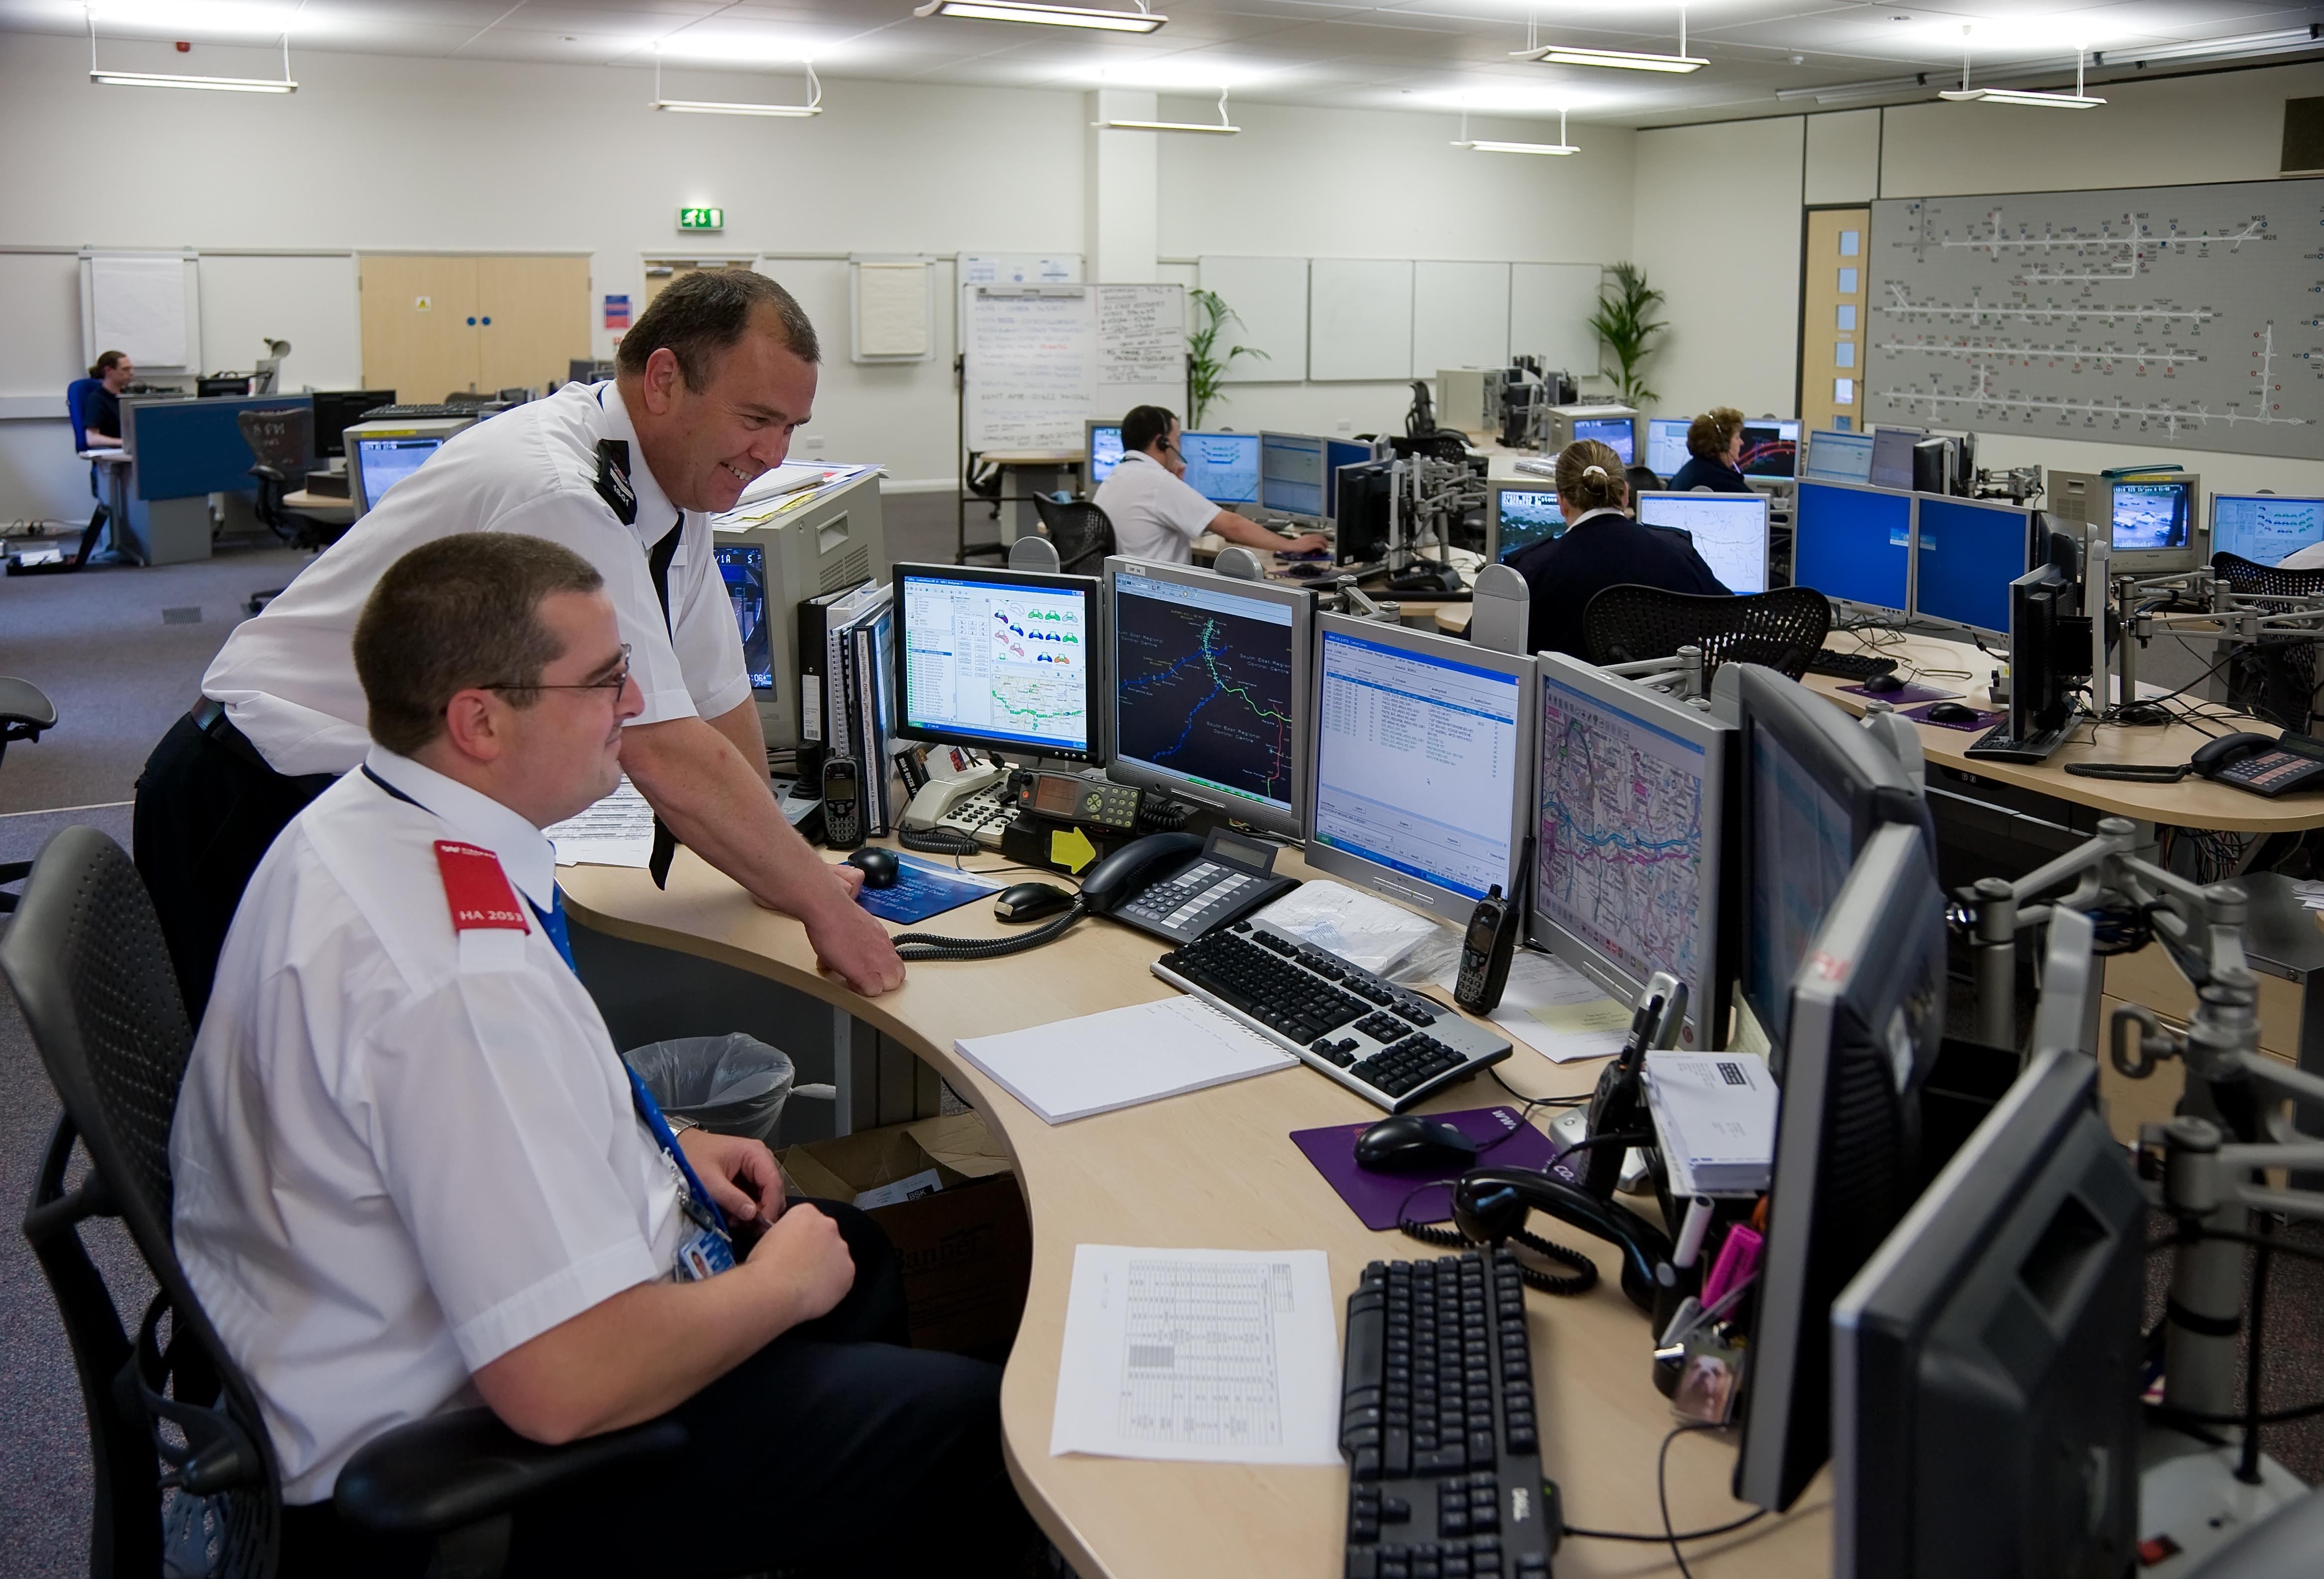 Adashi News: Awarded UK Incident Command Software Contract